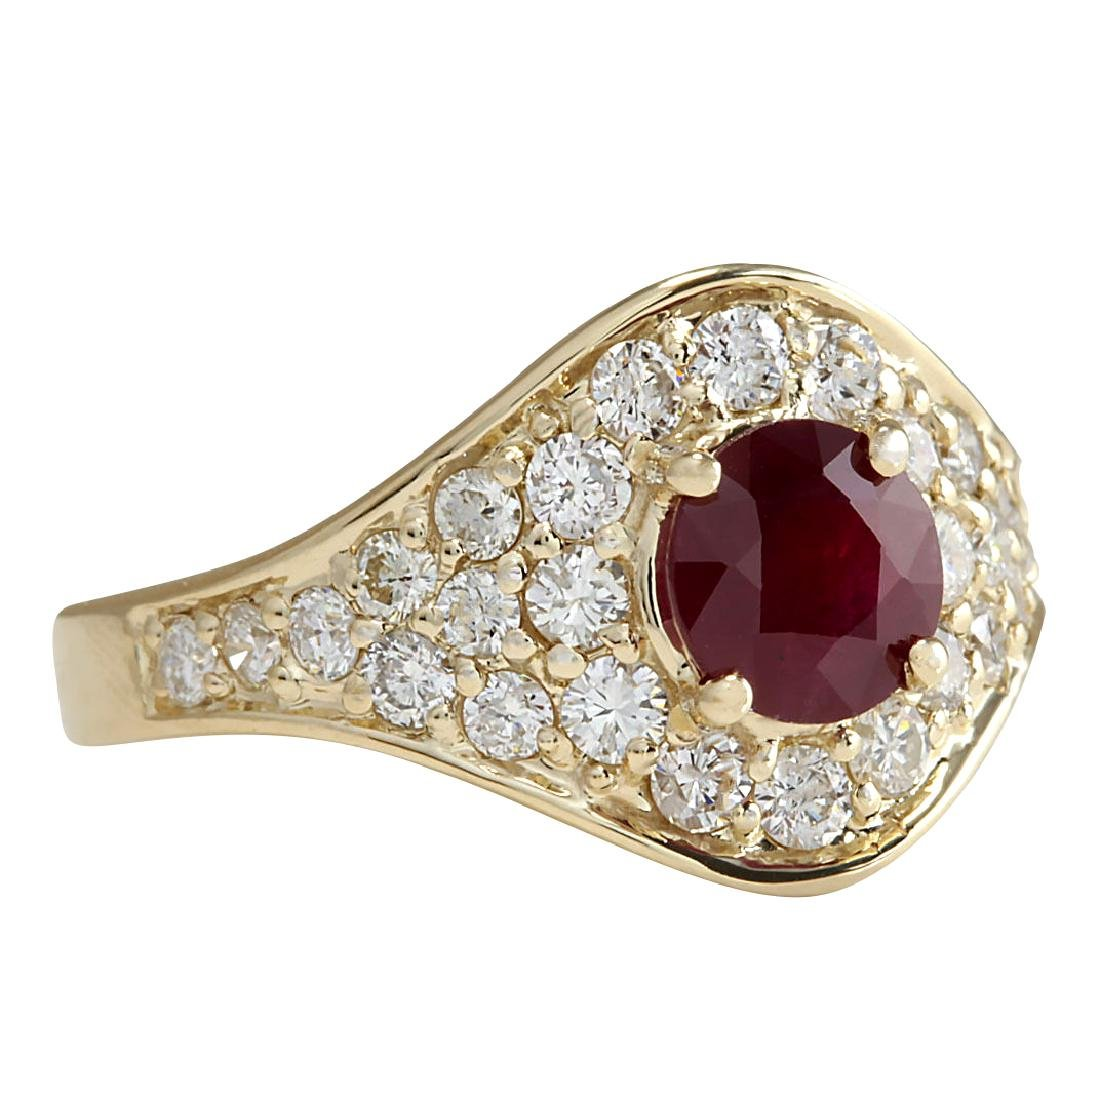 2.32Ct Natural Ruby And Diamond Ring In18K Yellow Gold - 2